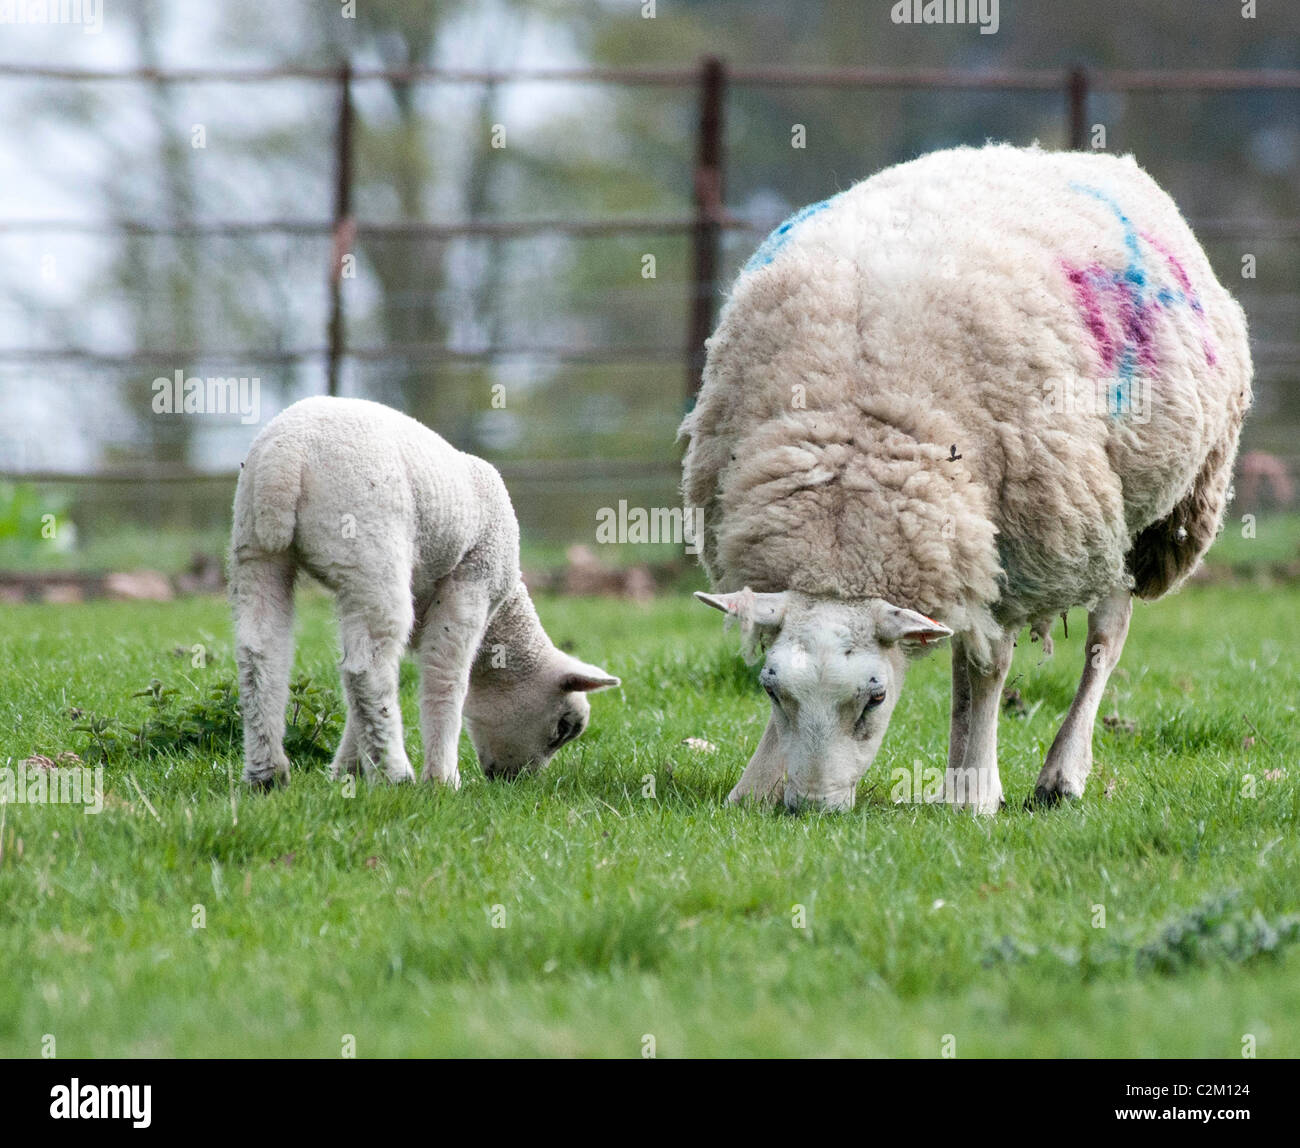 Mother sheep, ewe, with her young lamb in a field - Stock Image